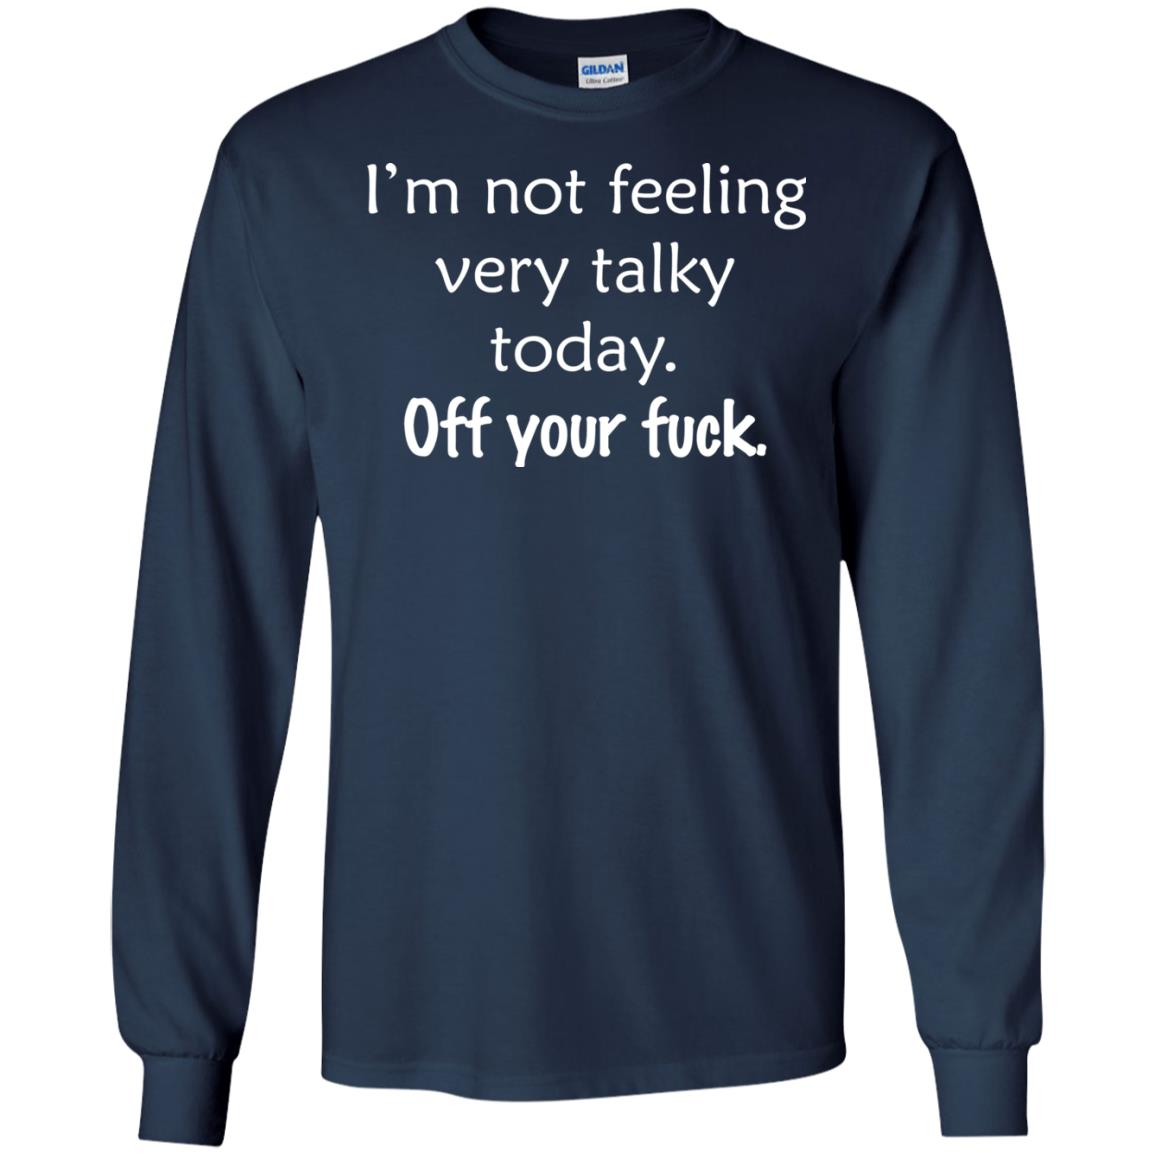 image 129 - I'm not feeling talky today Off your fuck t-shirt & sweater